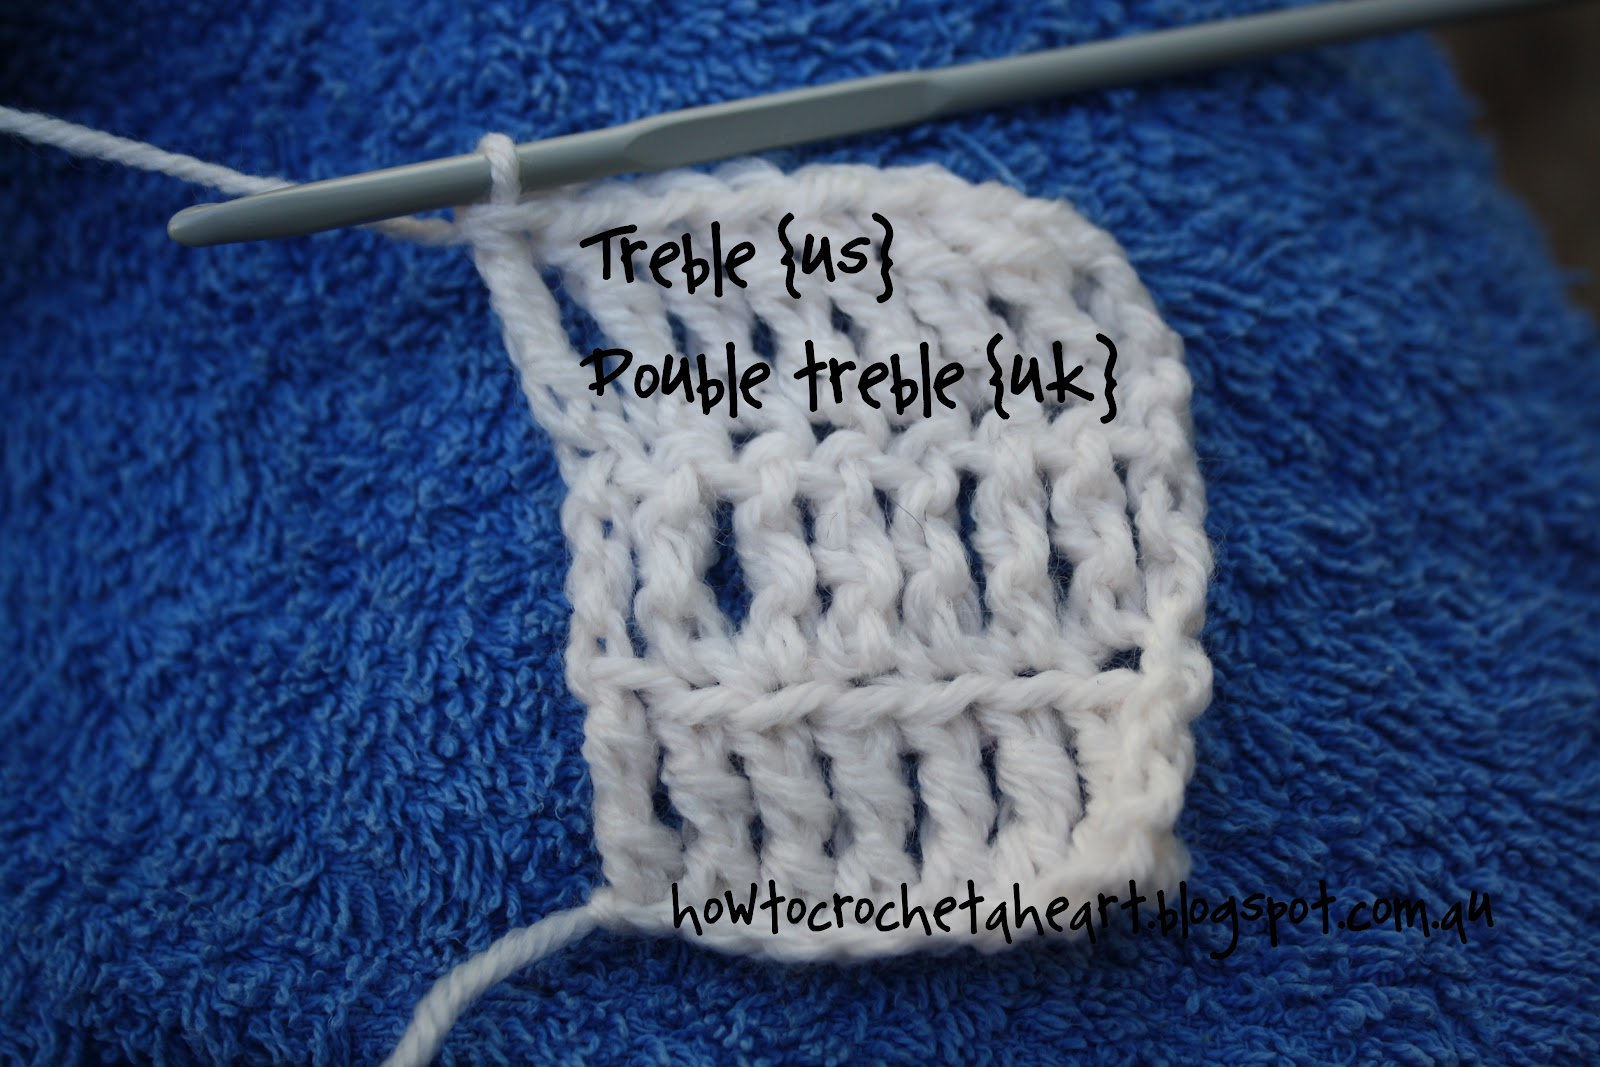 Crochet Stitches Tr : How To Crochet a Heart: {crochet basics} Treble Crochet /Double Treble ...